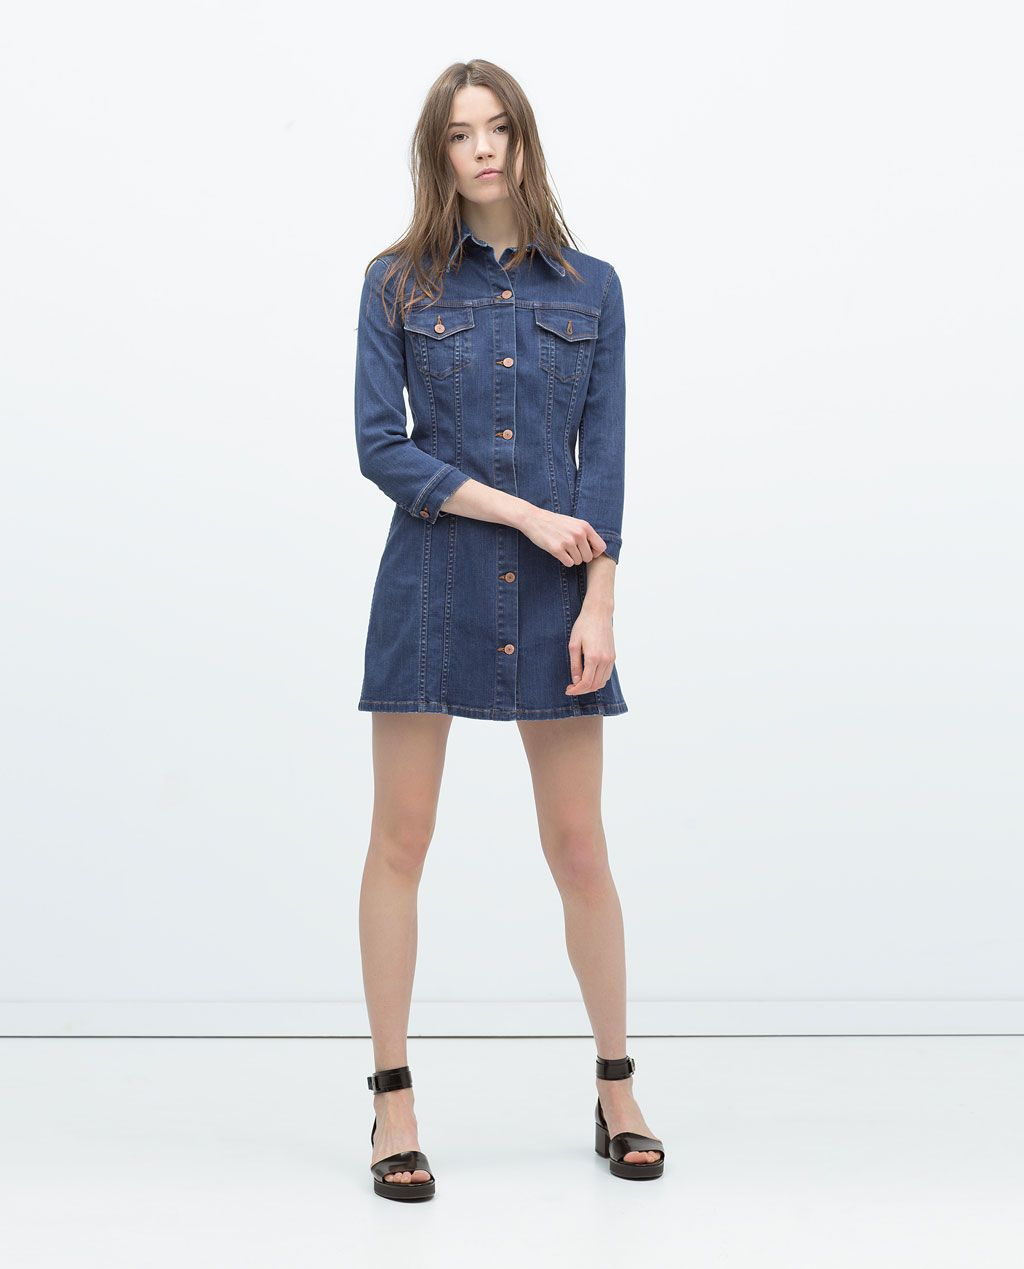 15eb2f1414f OUTFIT OF THE WEEK  THE SHIRT DRESS – HOW TO WEAR IT… AND FEEL ...